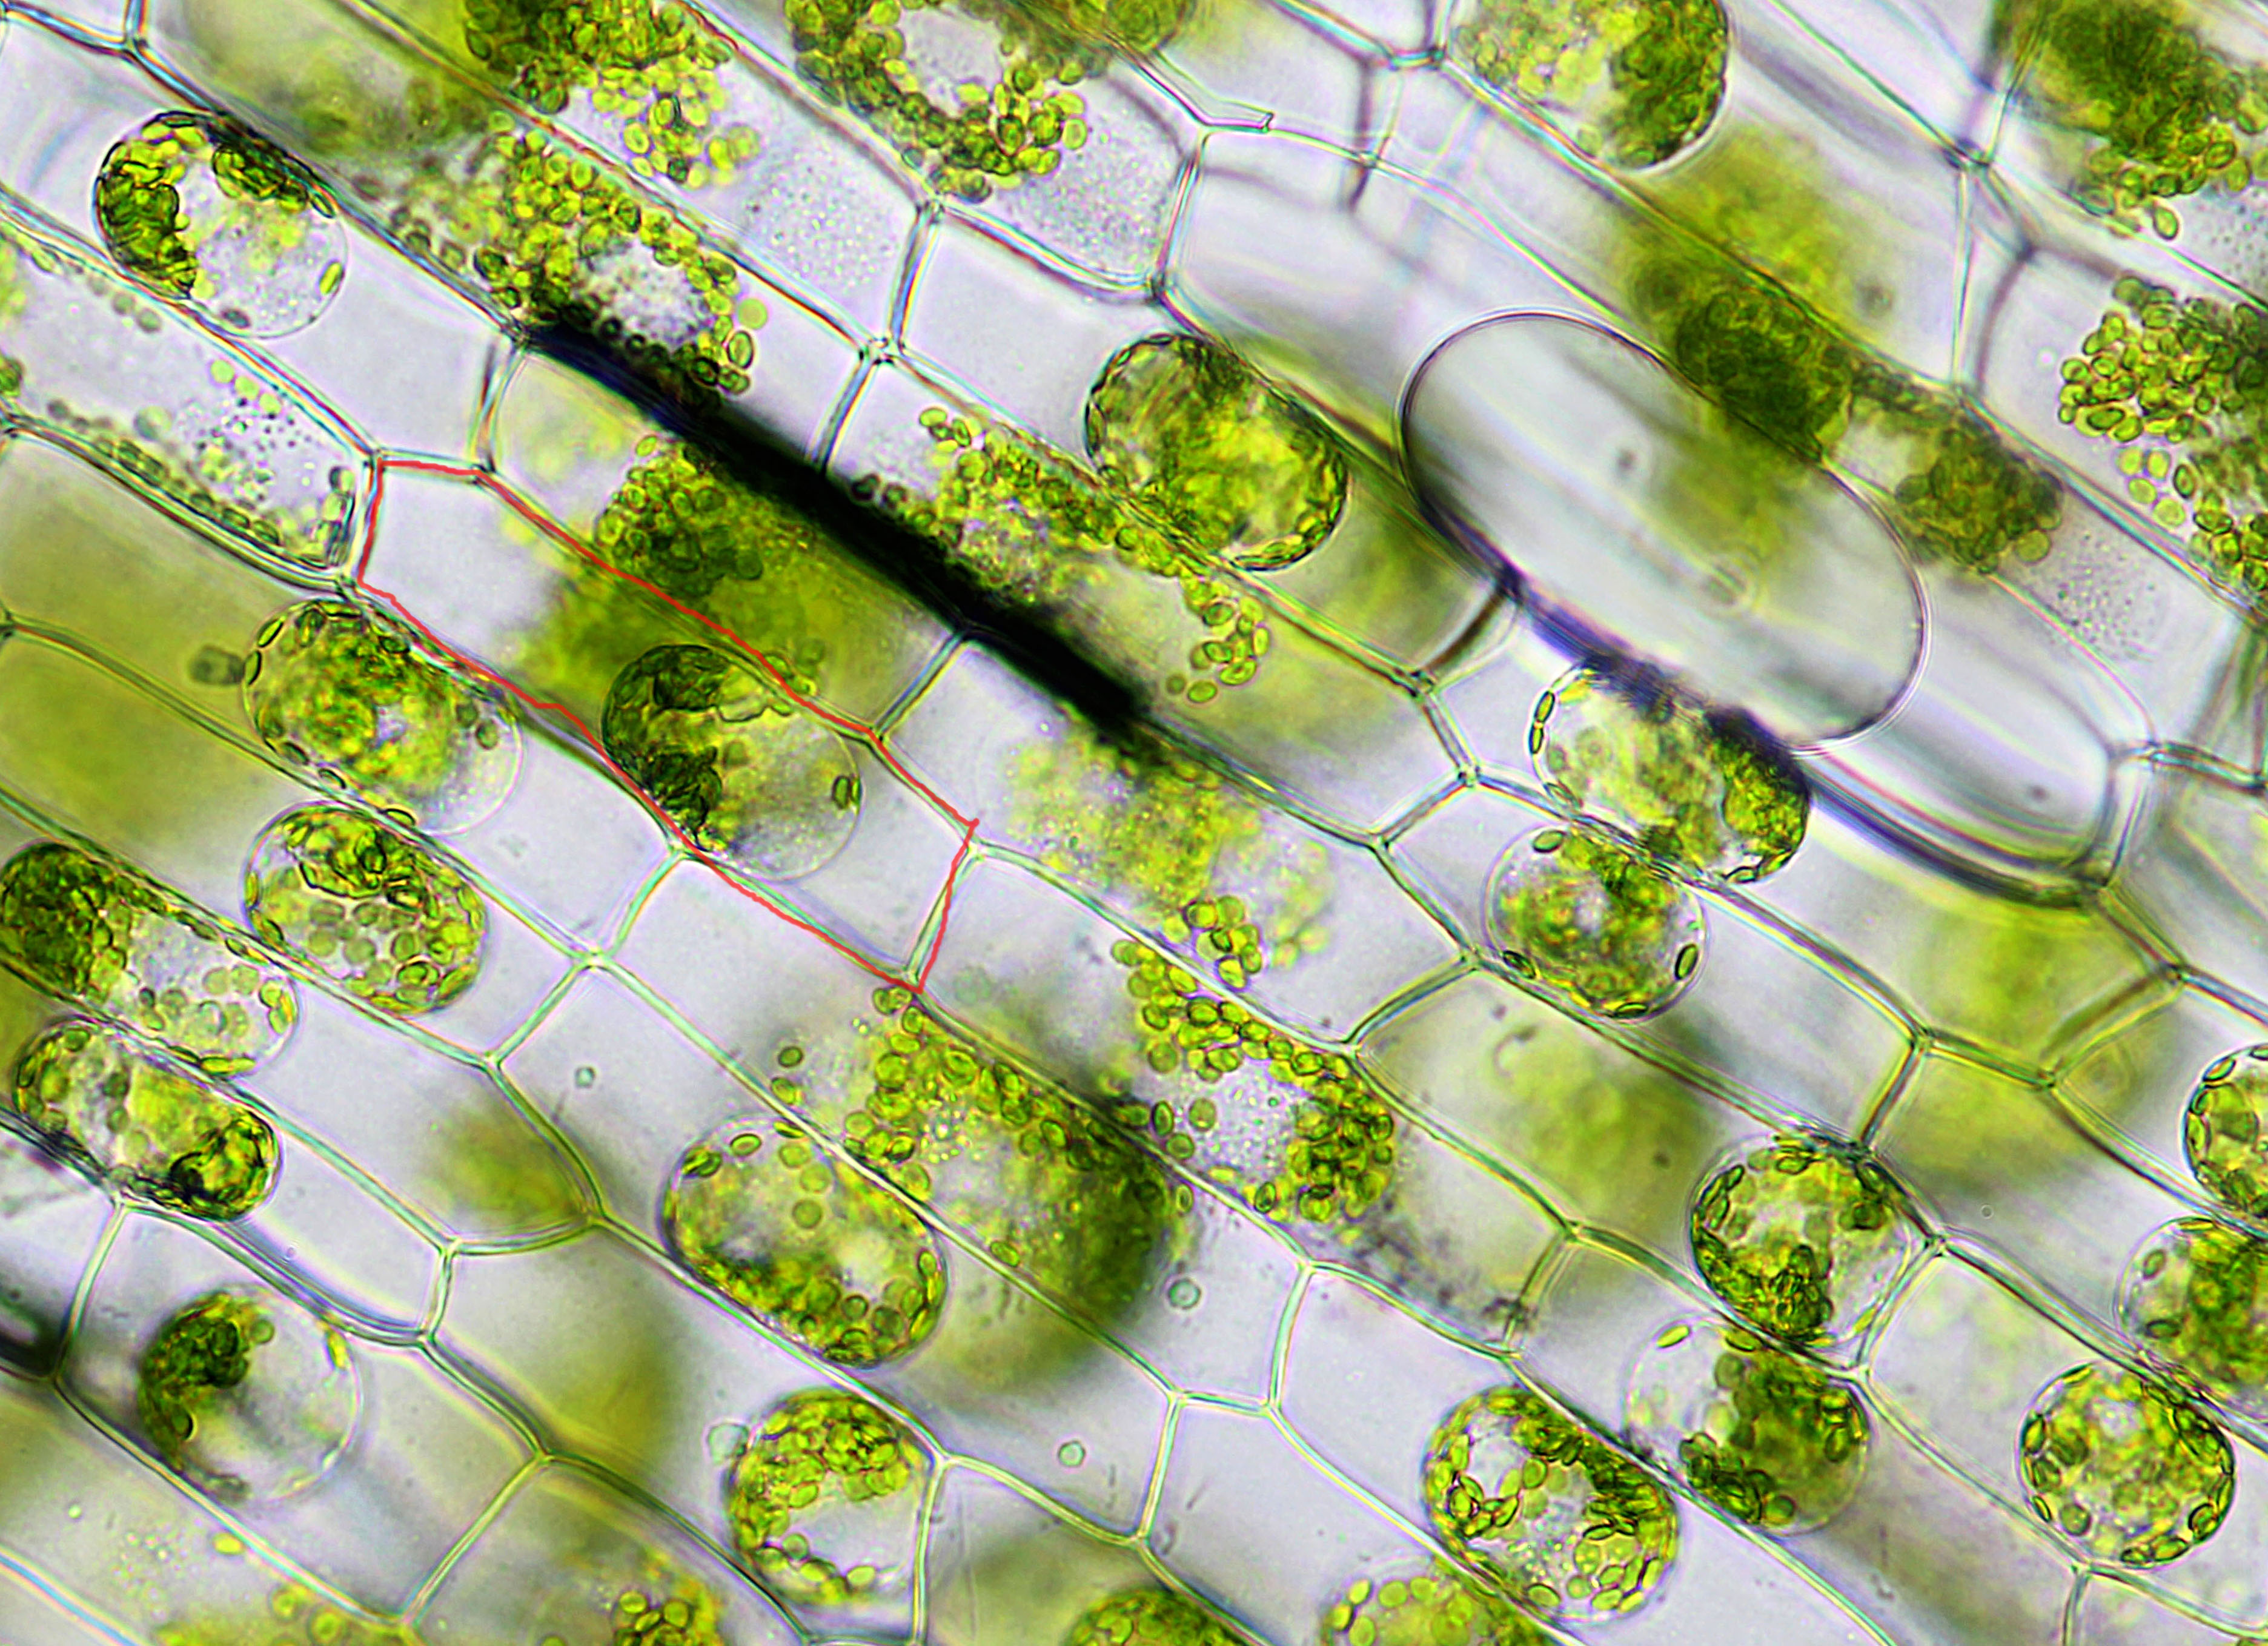 Elodea Leaf Cell Under Microscope Elodea Leaf Cells in